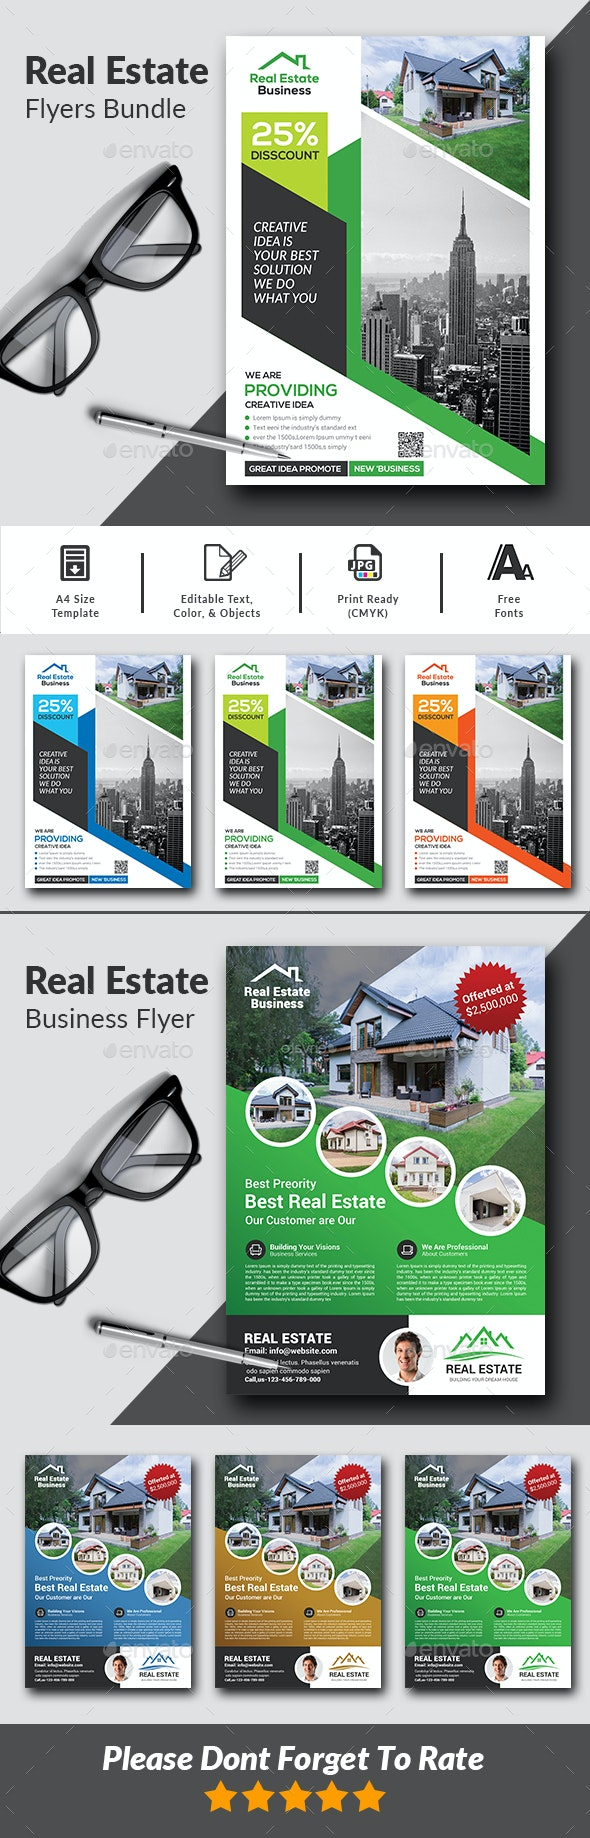 Real Estate Flyers Bundle Template - Corporate Flyers